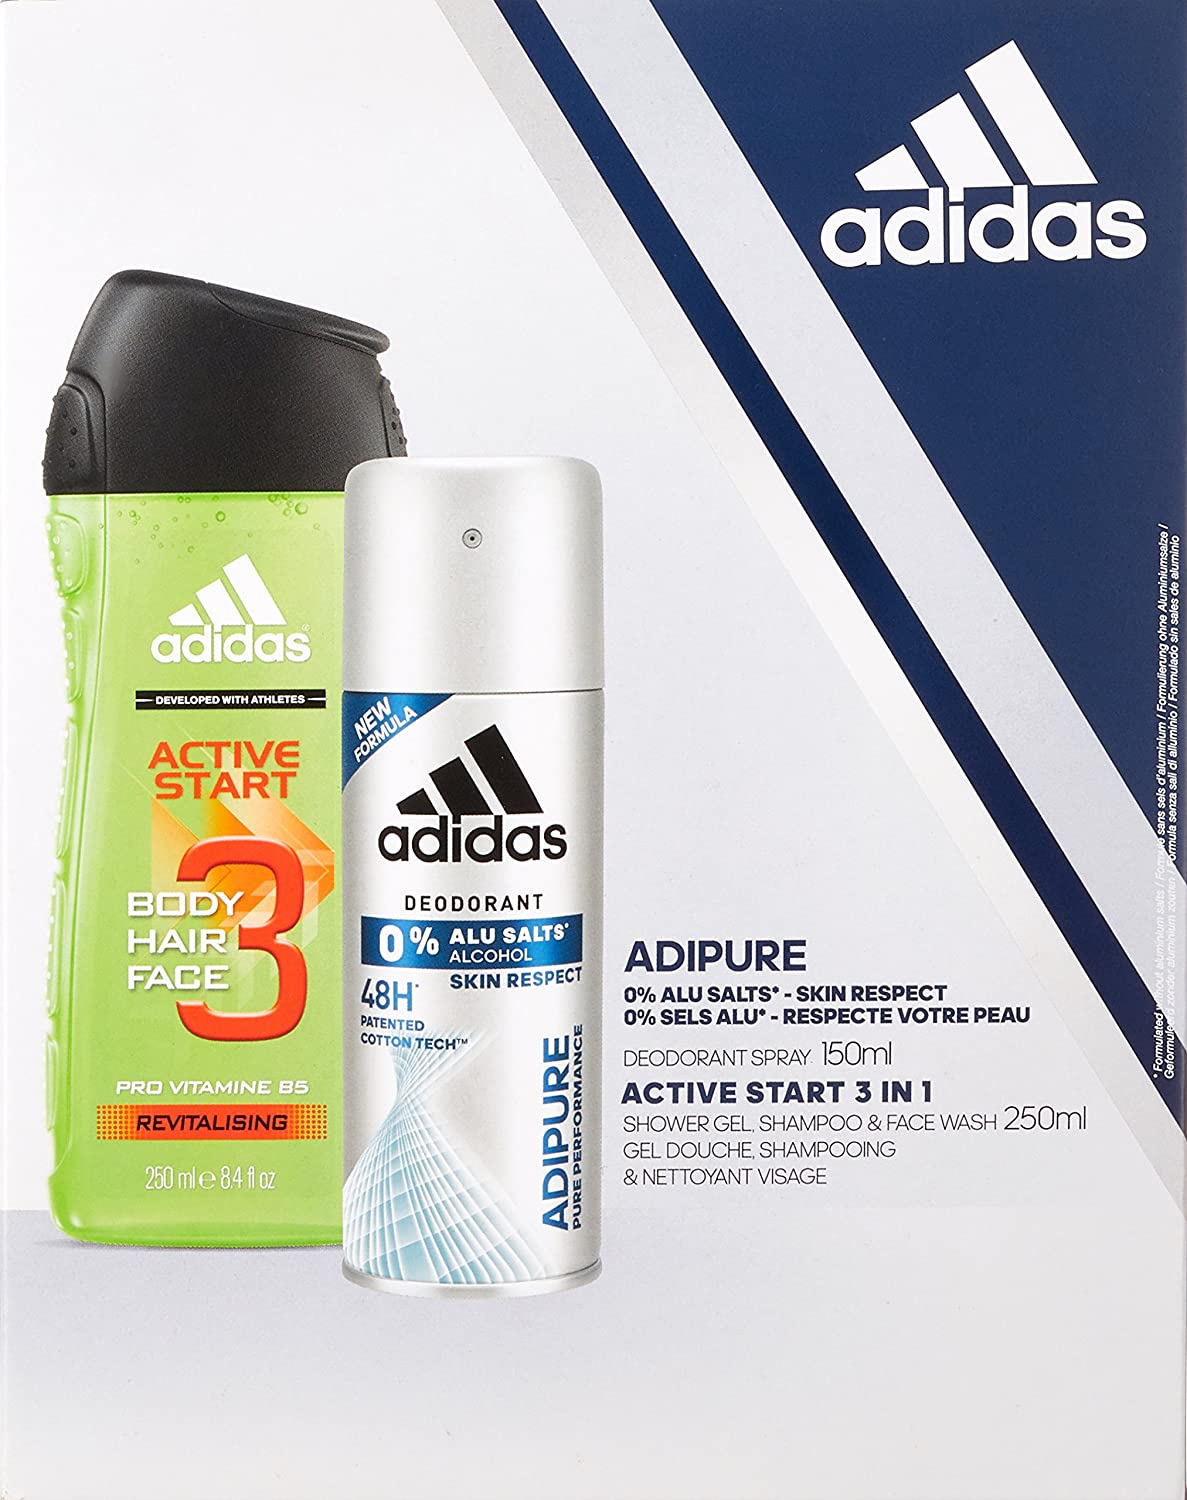 new arrival 7602e d2ff6 Adidas Active Start 250ml Body Hair Face Wash  Adipure 150ml Deodorant  Spray - Duo Gift Set for Men Amazon.co.uk Beauty